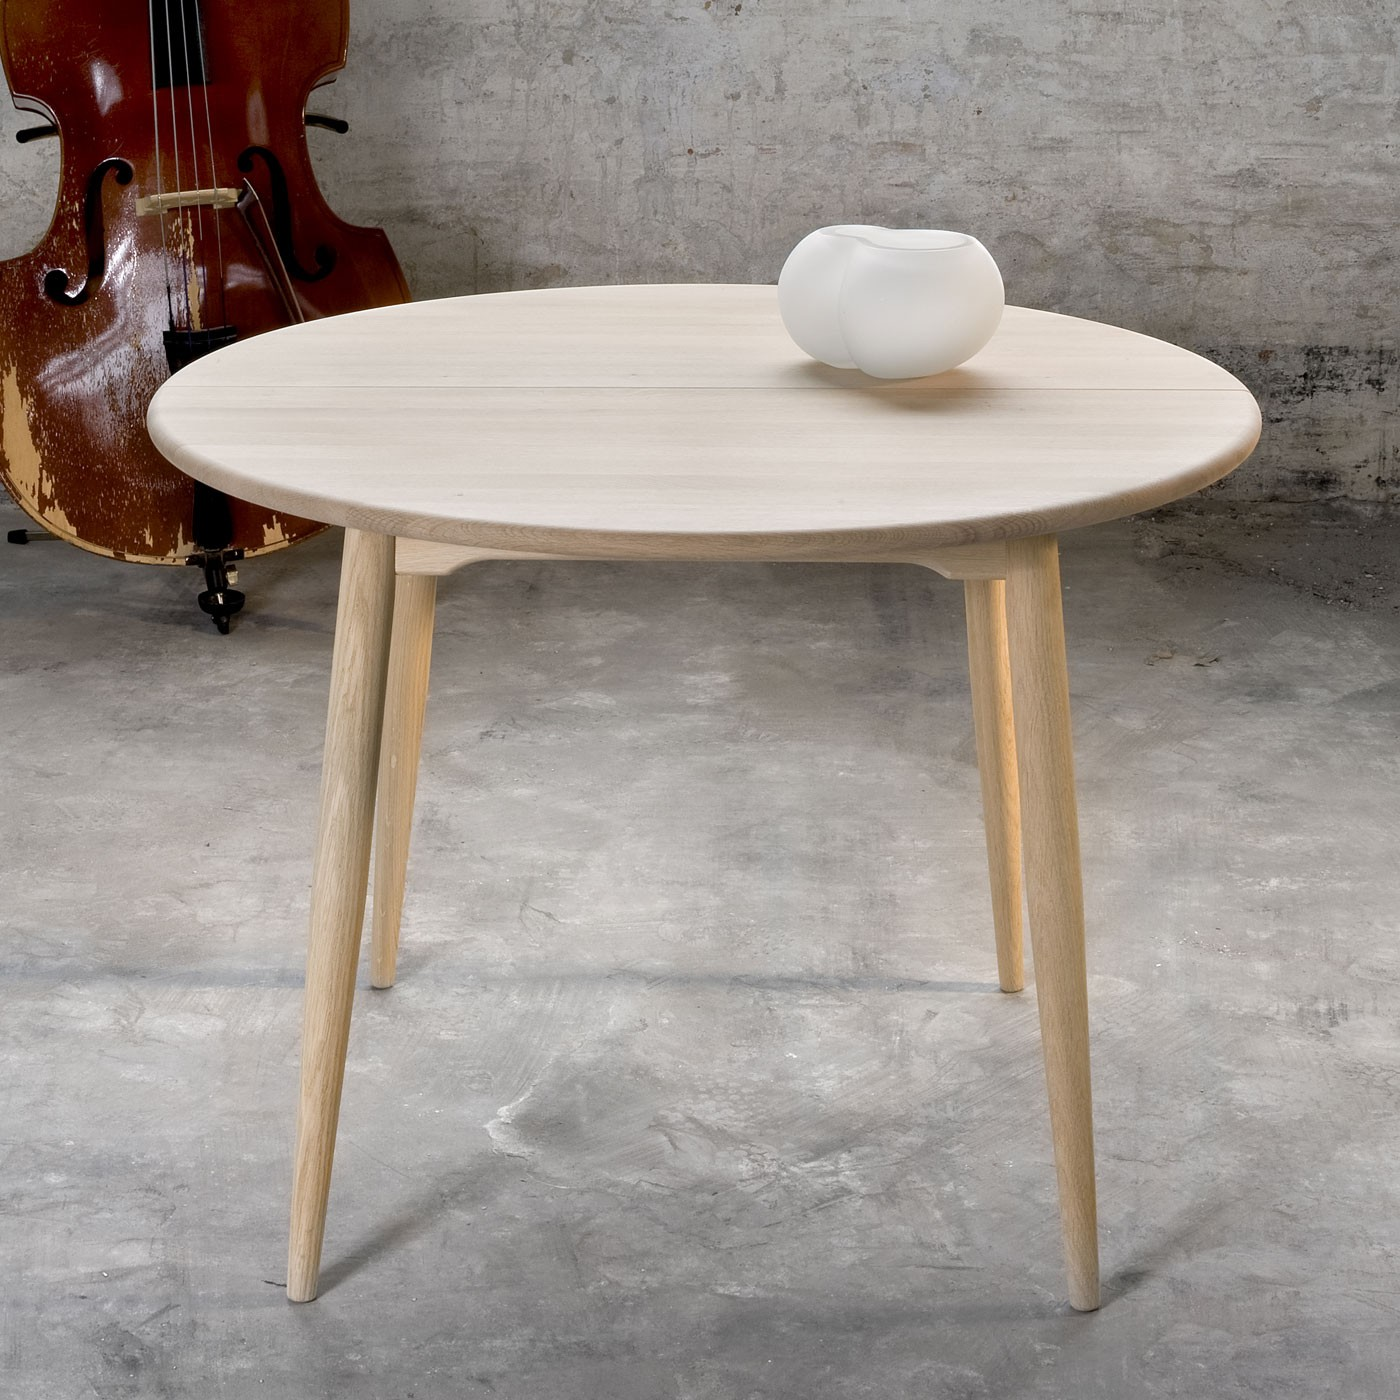 Table Ronde Scandinave Rallonge Tables Design Scandinave Et Design Nordique Au Meilleur Prix Www